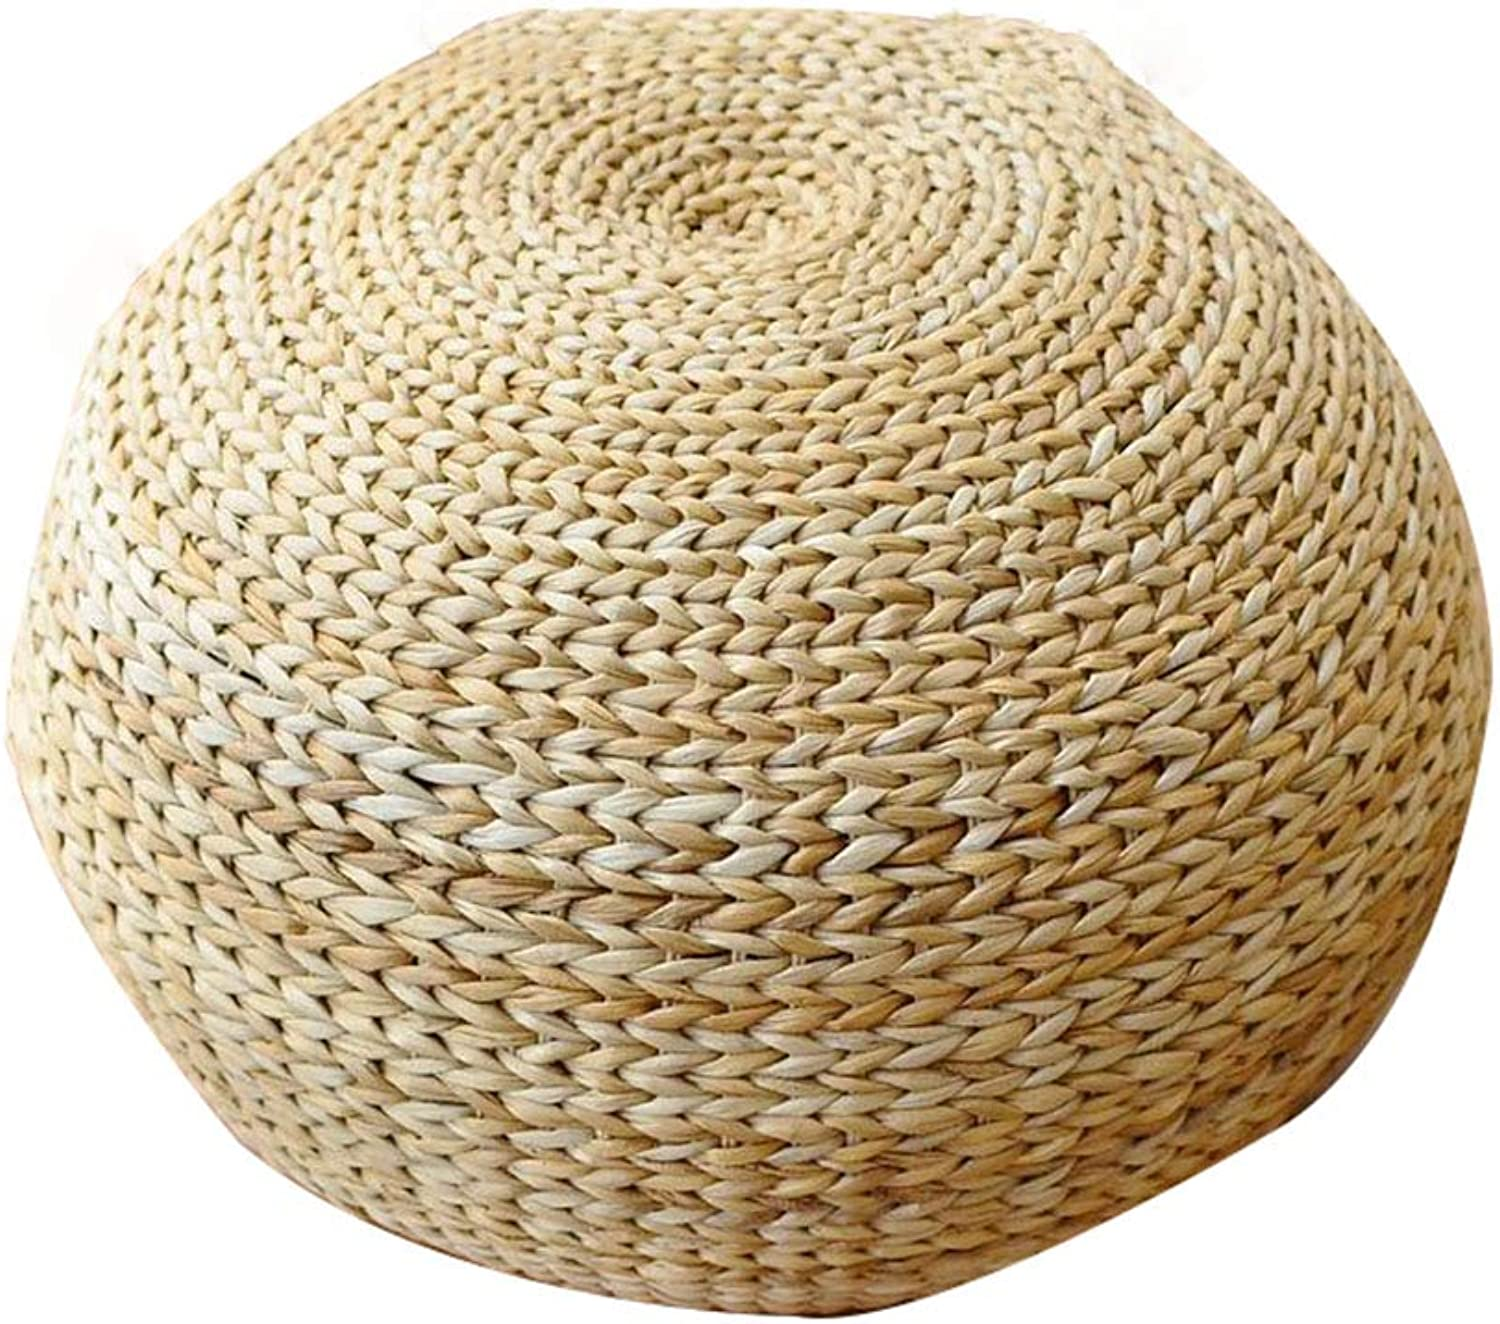 Small Stool, Rattan, Round Stool, Woven Seat, Stylish and Creative,a